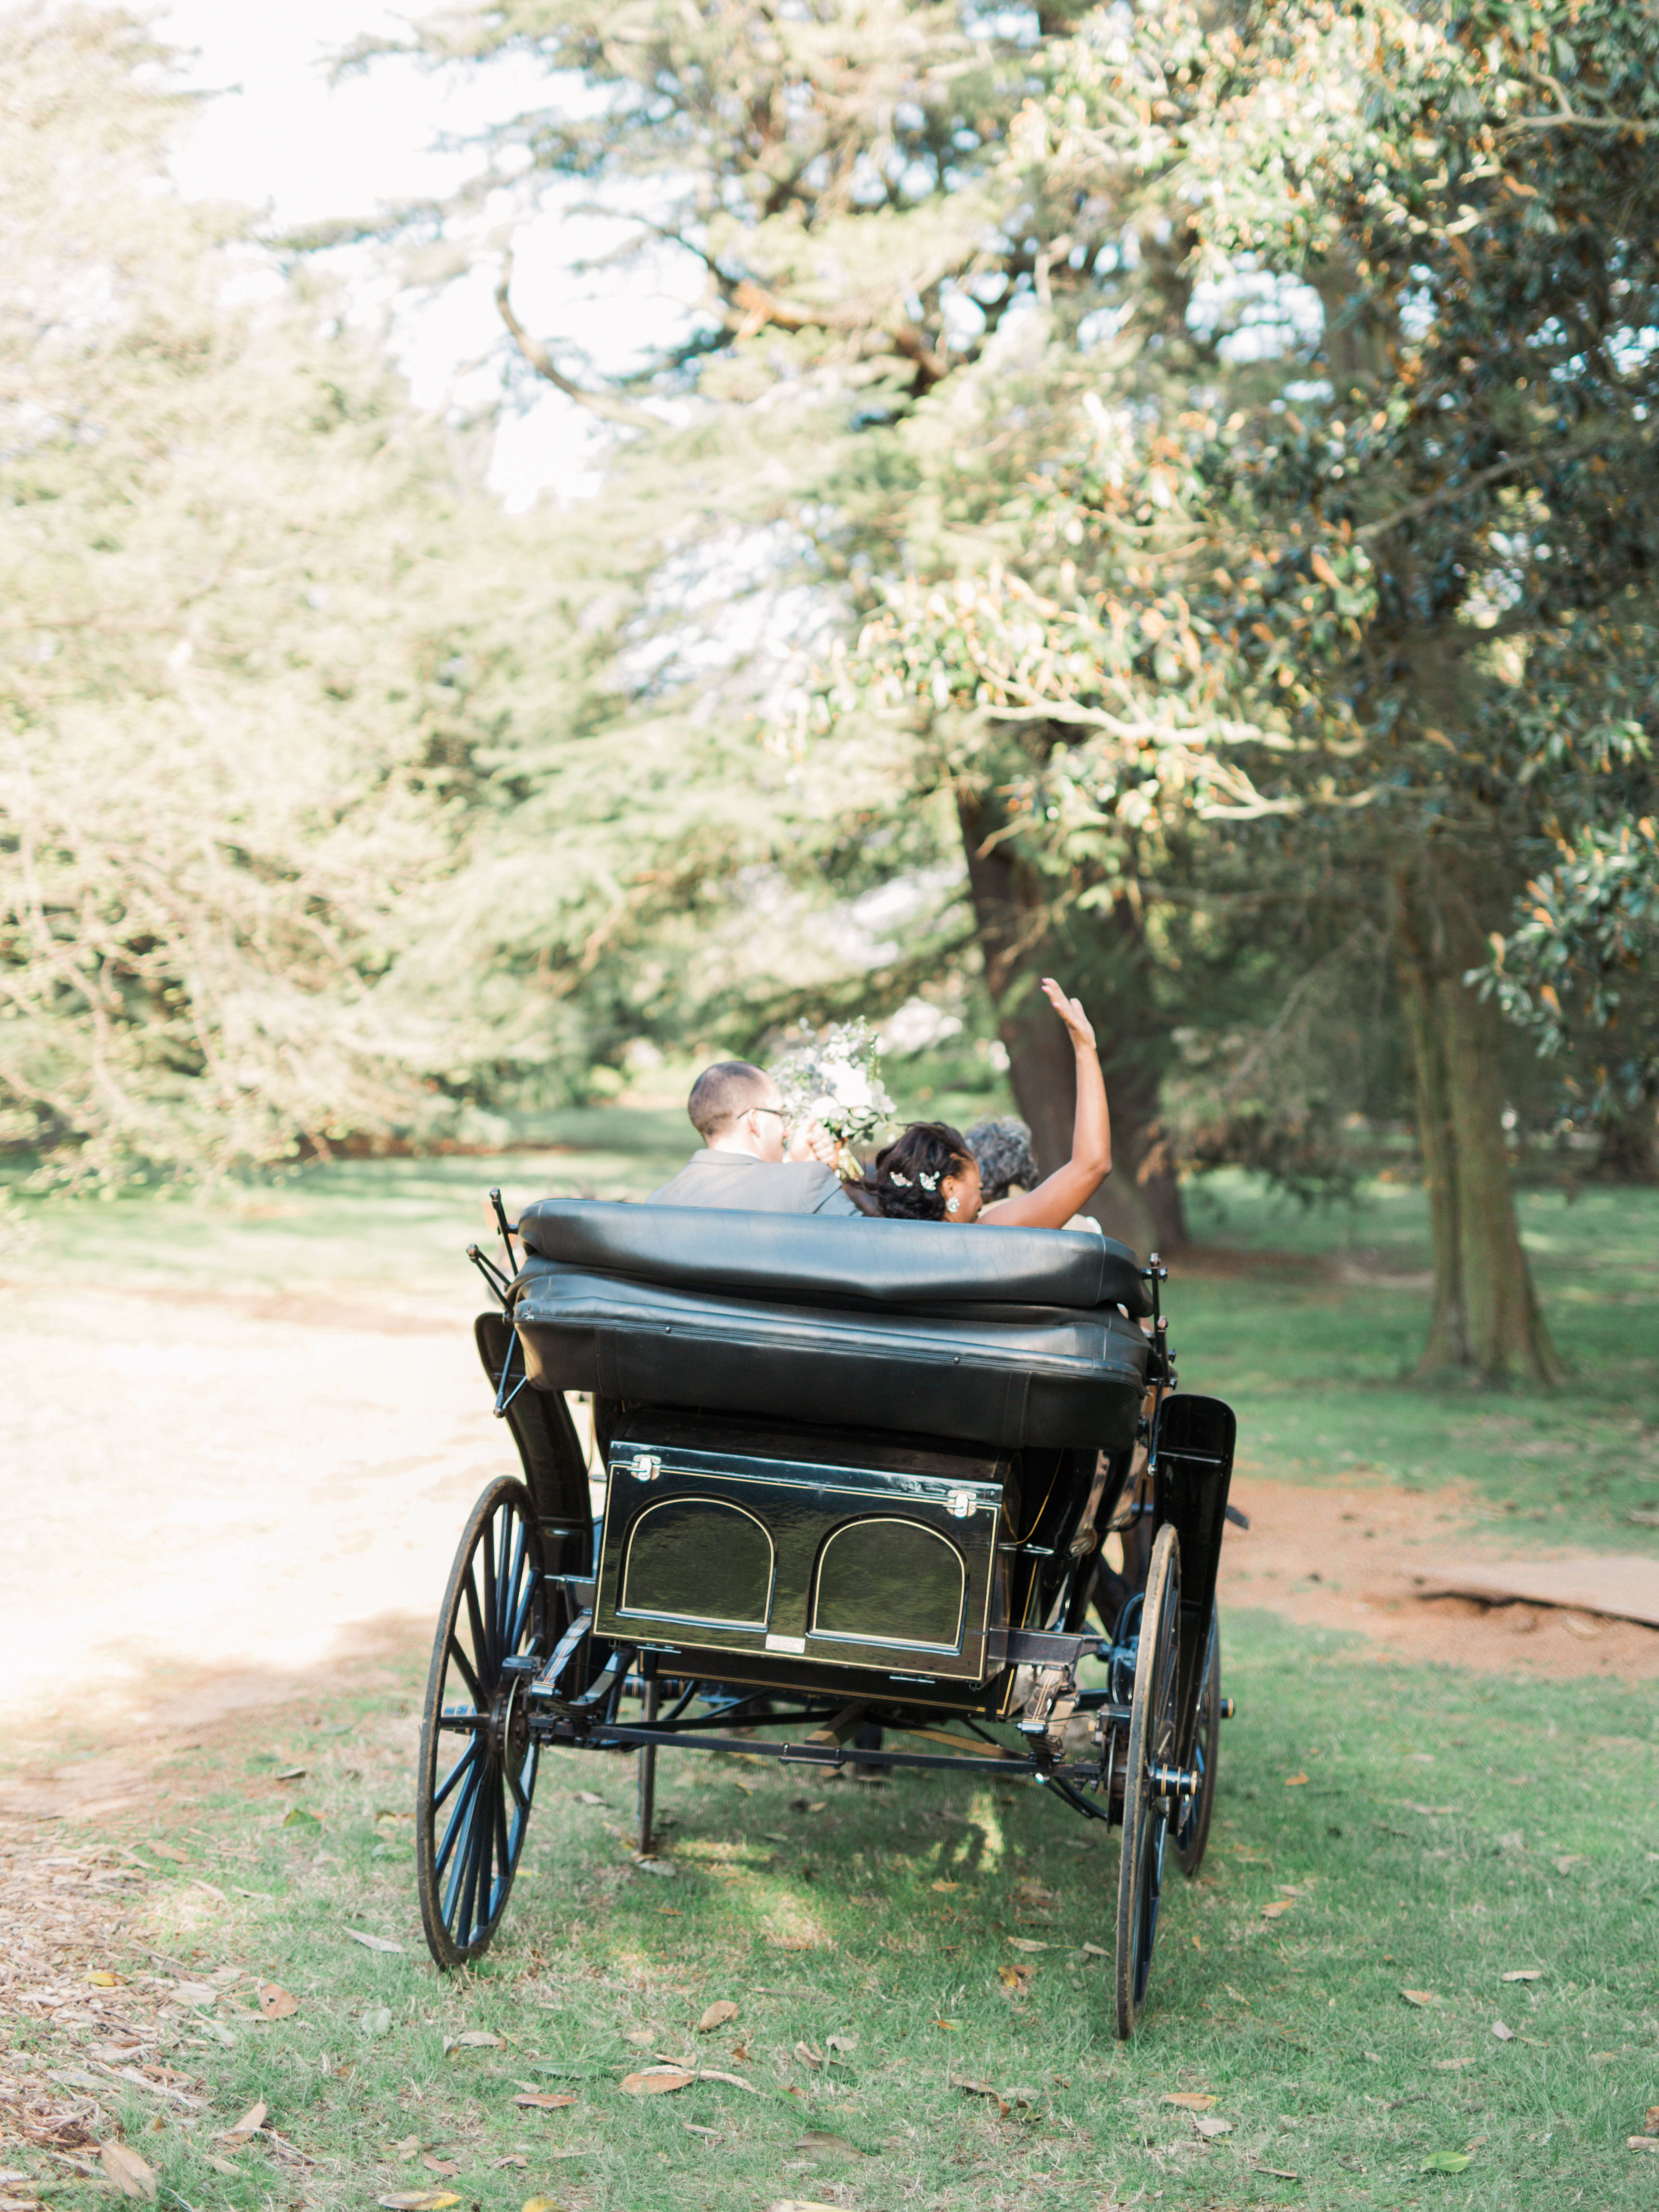 wedding carriage bride and groom riding outdoors